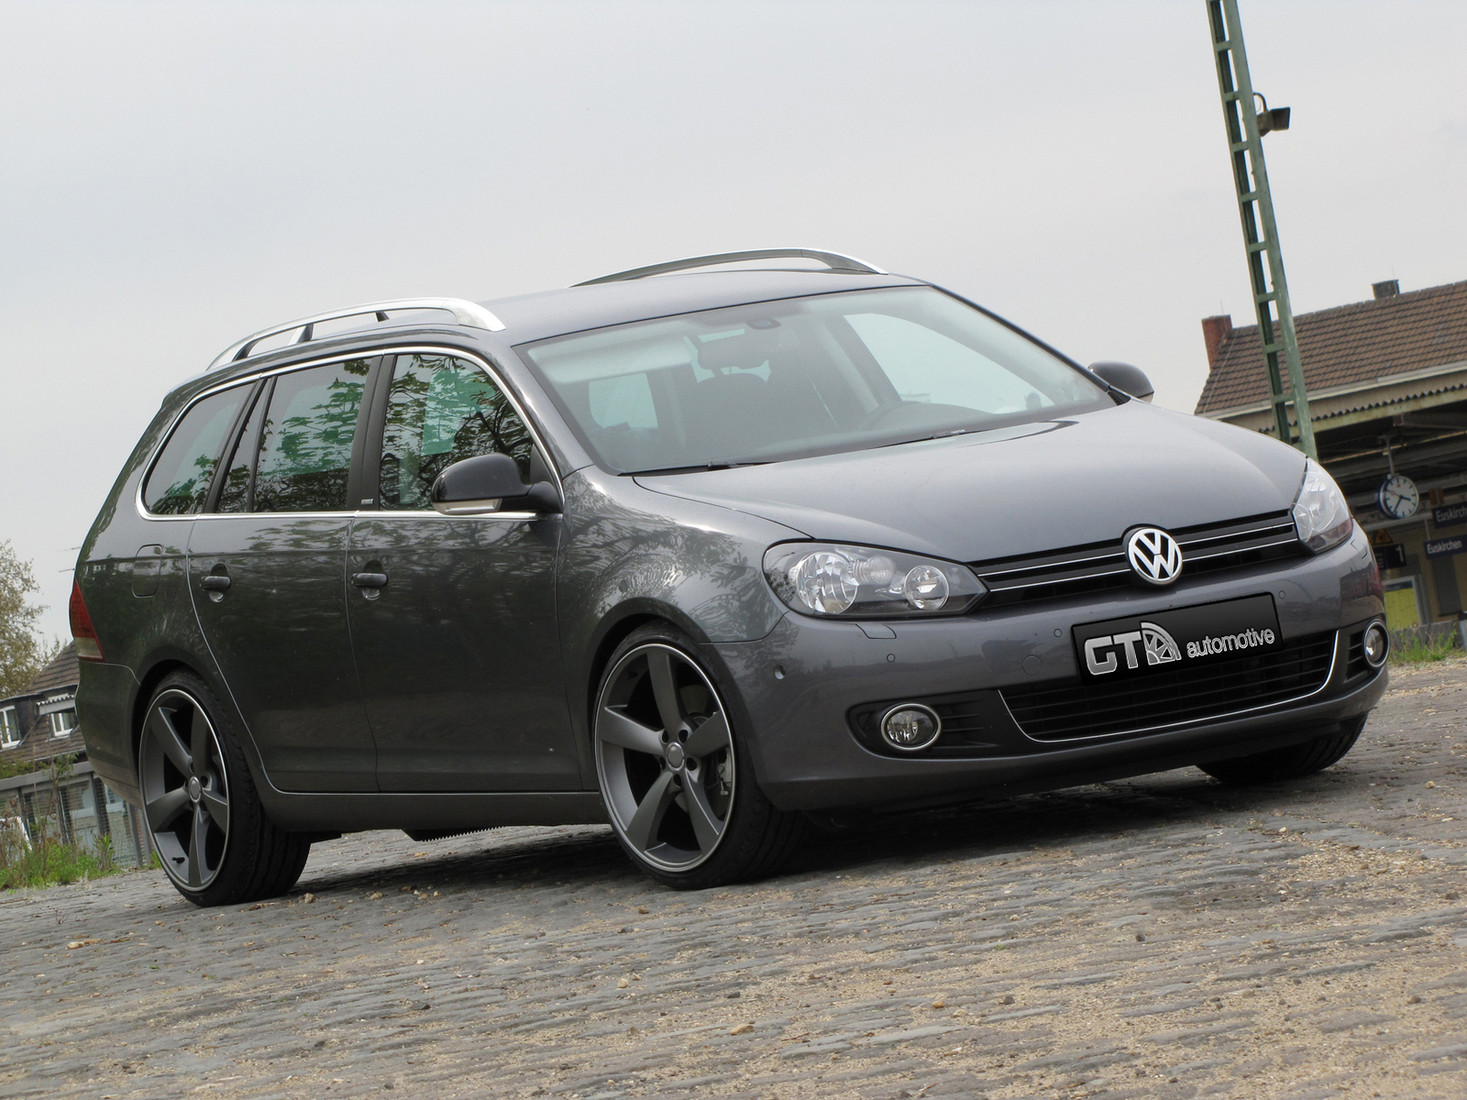 news alufelgen vw golf variant 1km sat21 grey alufelgen 8. Black Bedroom Furniture Sets. Home Design Ideas